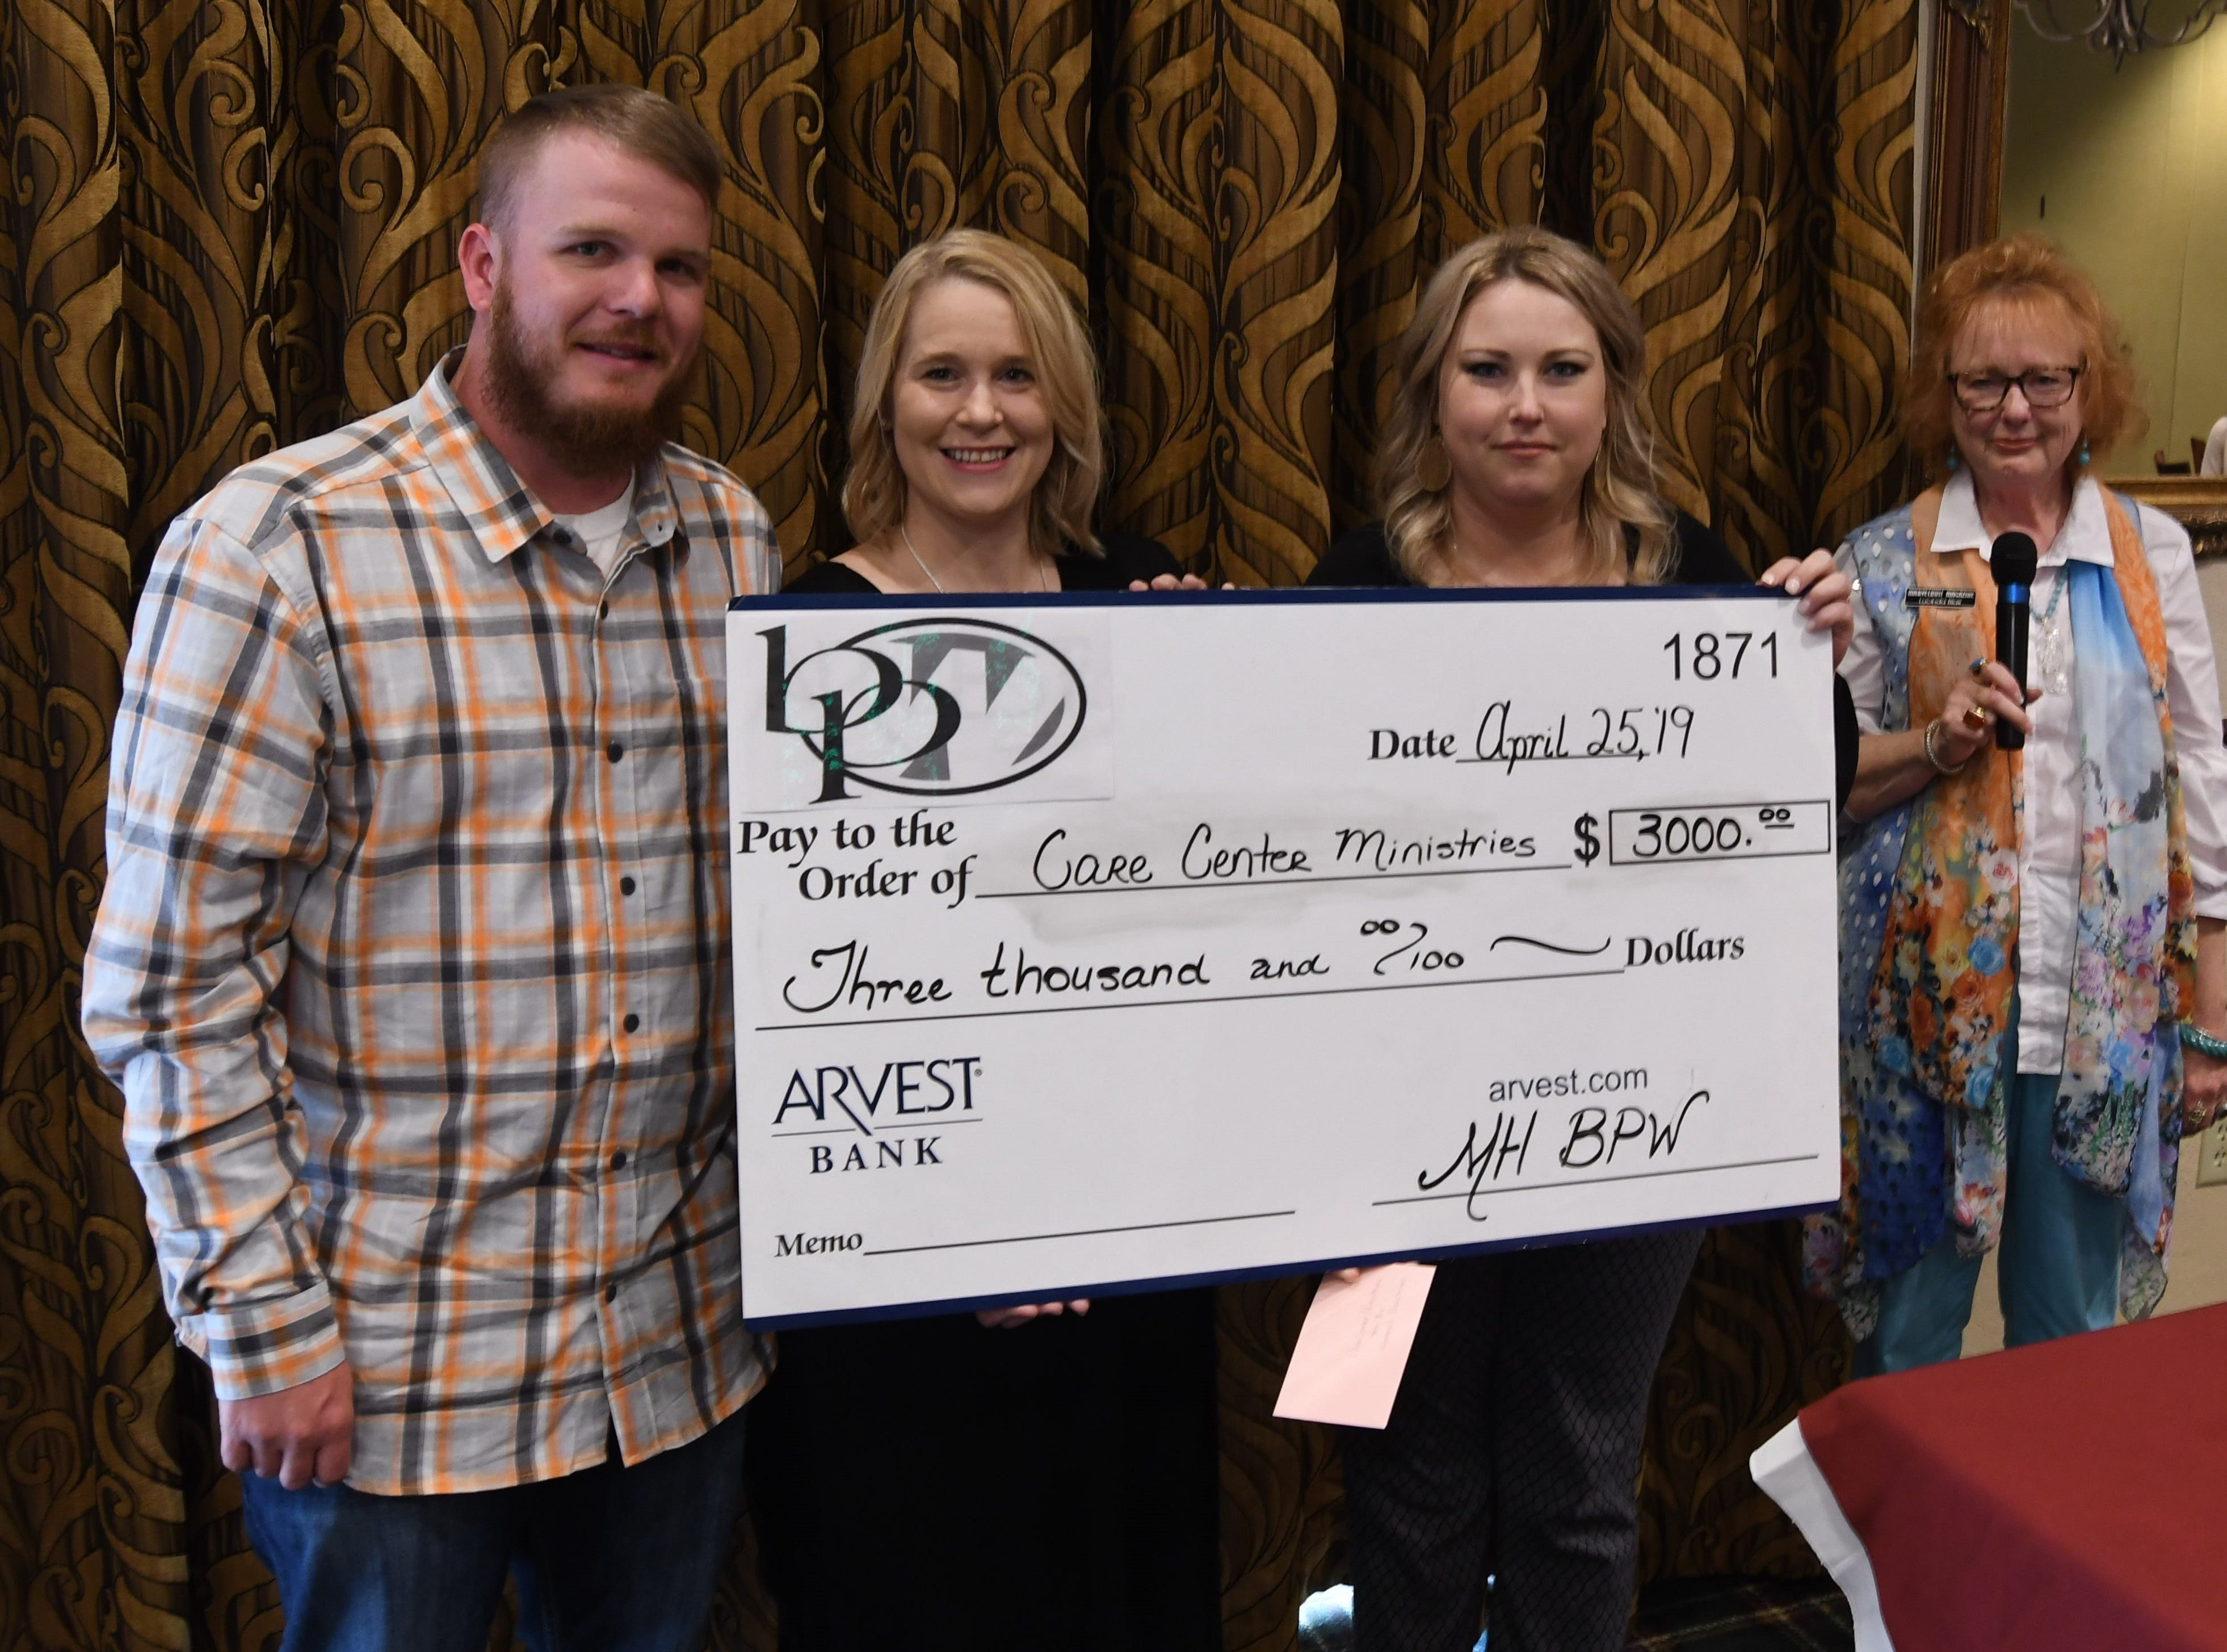 Blake Atchison and Lacy Hampton (left) accept a check for $3,000 from Mountain Home Business & Professional Women president Ashley Hambelton and vice president Lucinda Blair on behalf of Care Center Ministries.